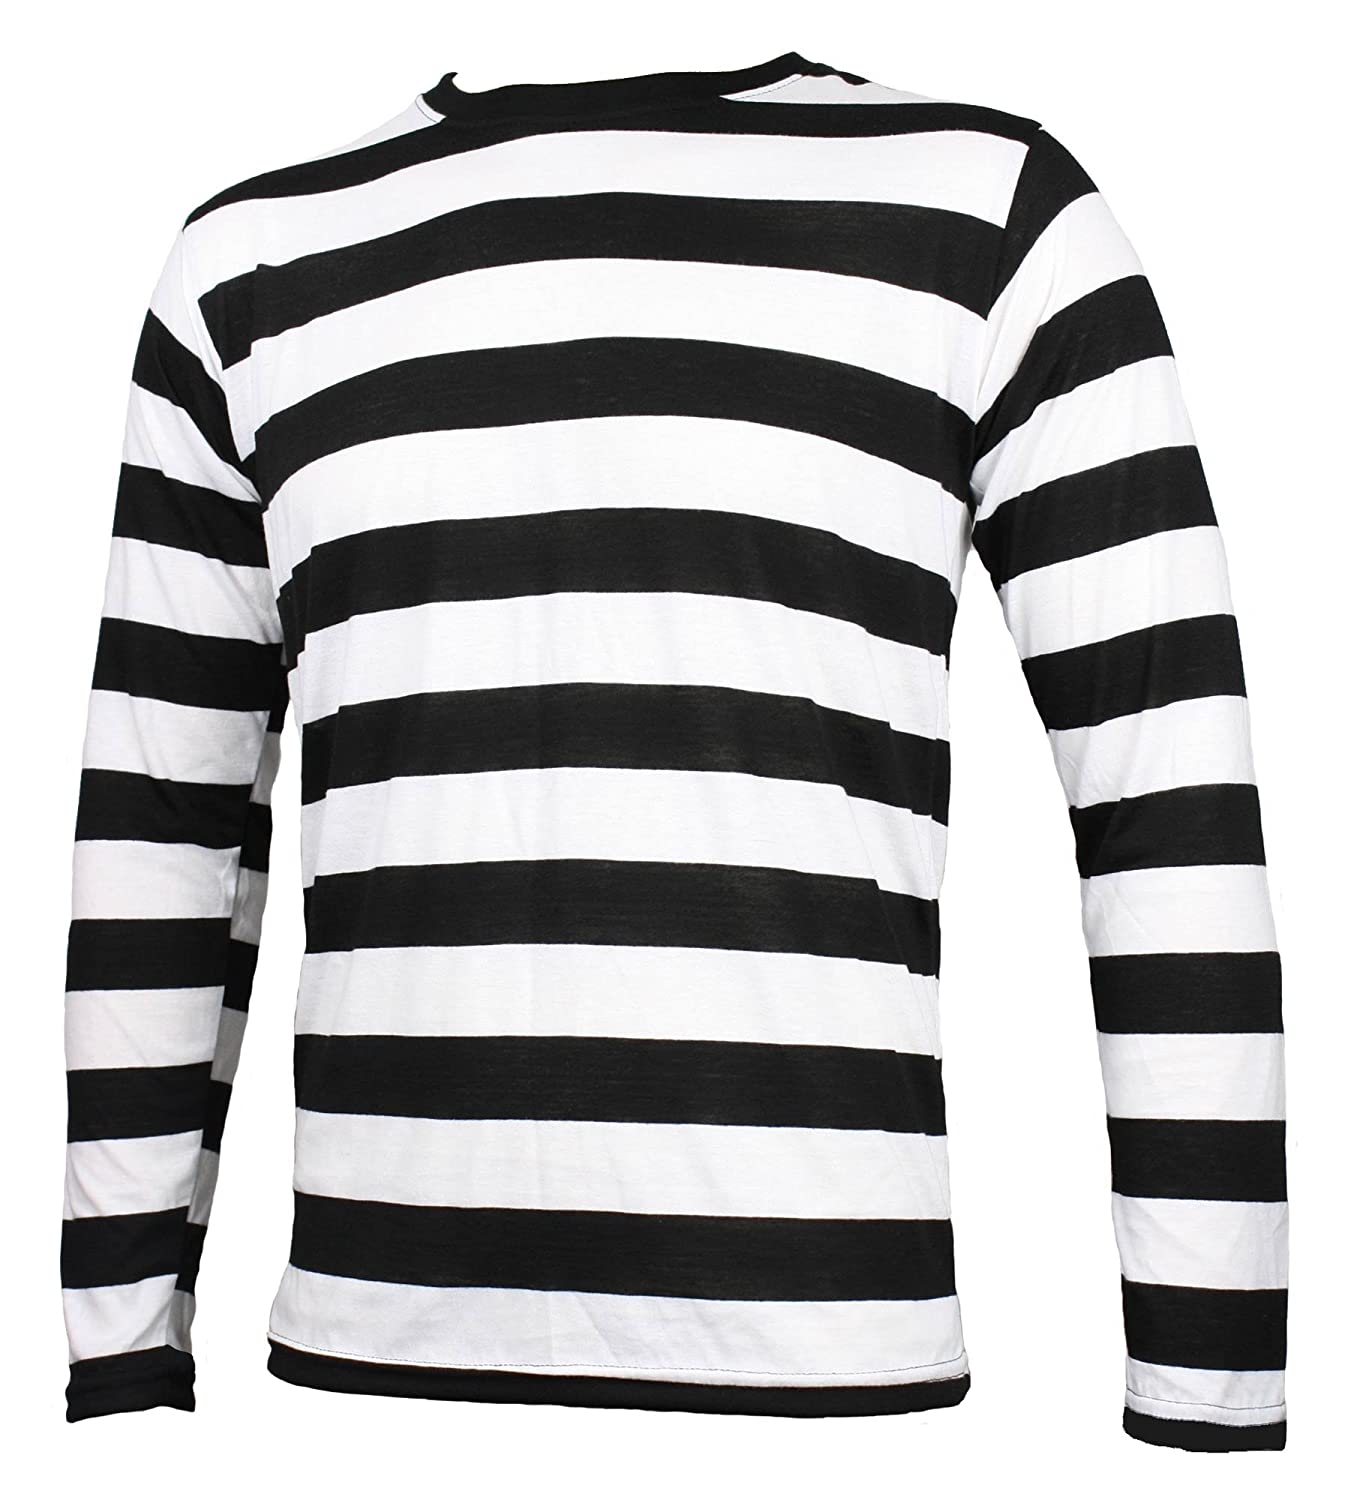 Cover your body with amazing Black White Stripe t-shirts from Zazzle. Search for your new favorite shirt from thousands of great designs!